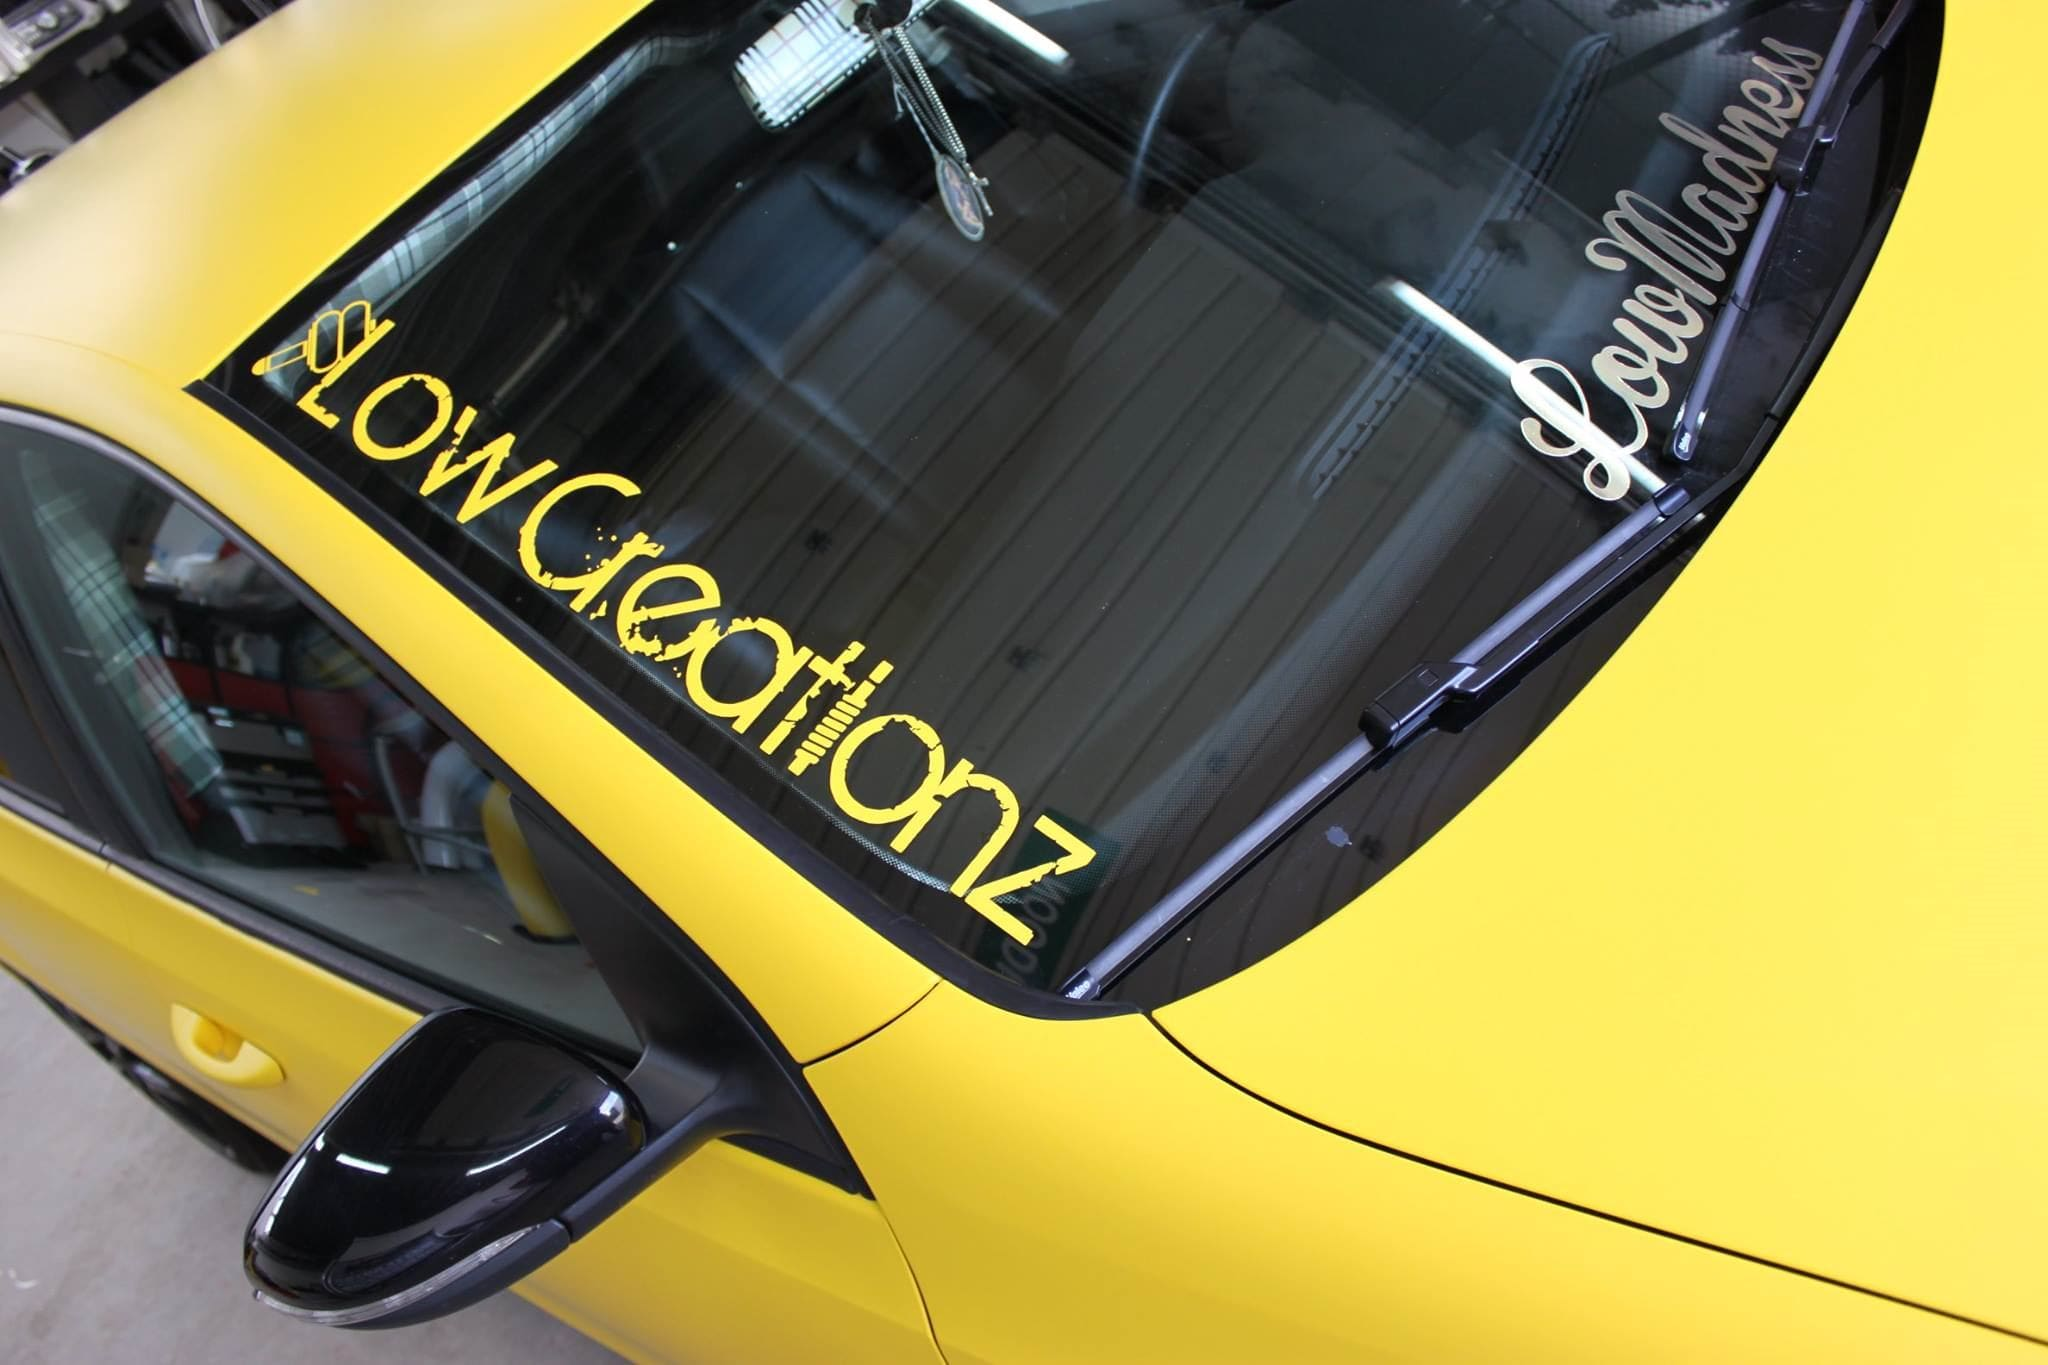 Volkswagen Golf 6 met Mat Bright Yellow Wrap voor Low Creationz, Carwrapping door Wrapmyride.nu Foto-nr:7588, ©2020